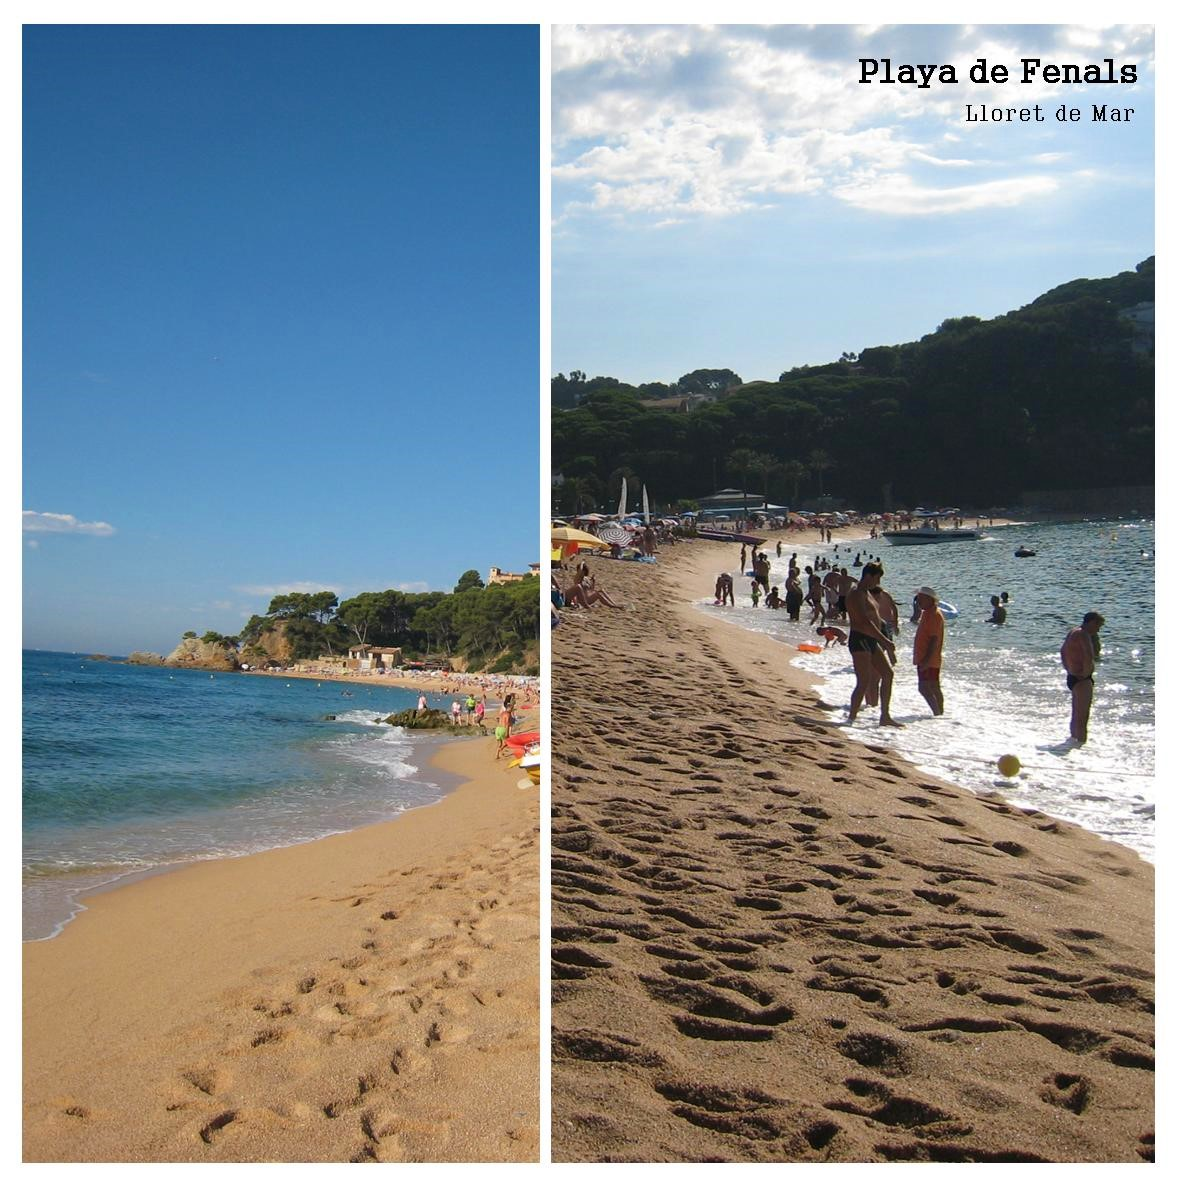 Playa de Fenals - Lloret de mar Costa Brava